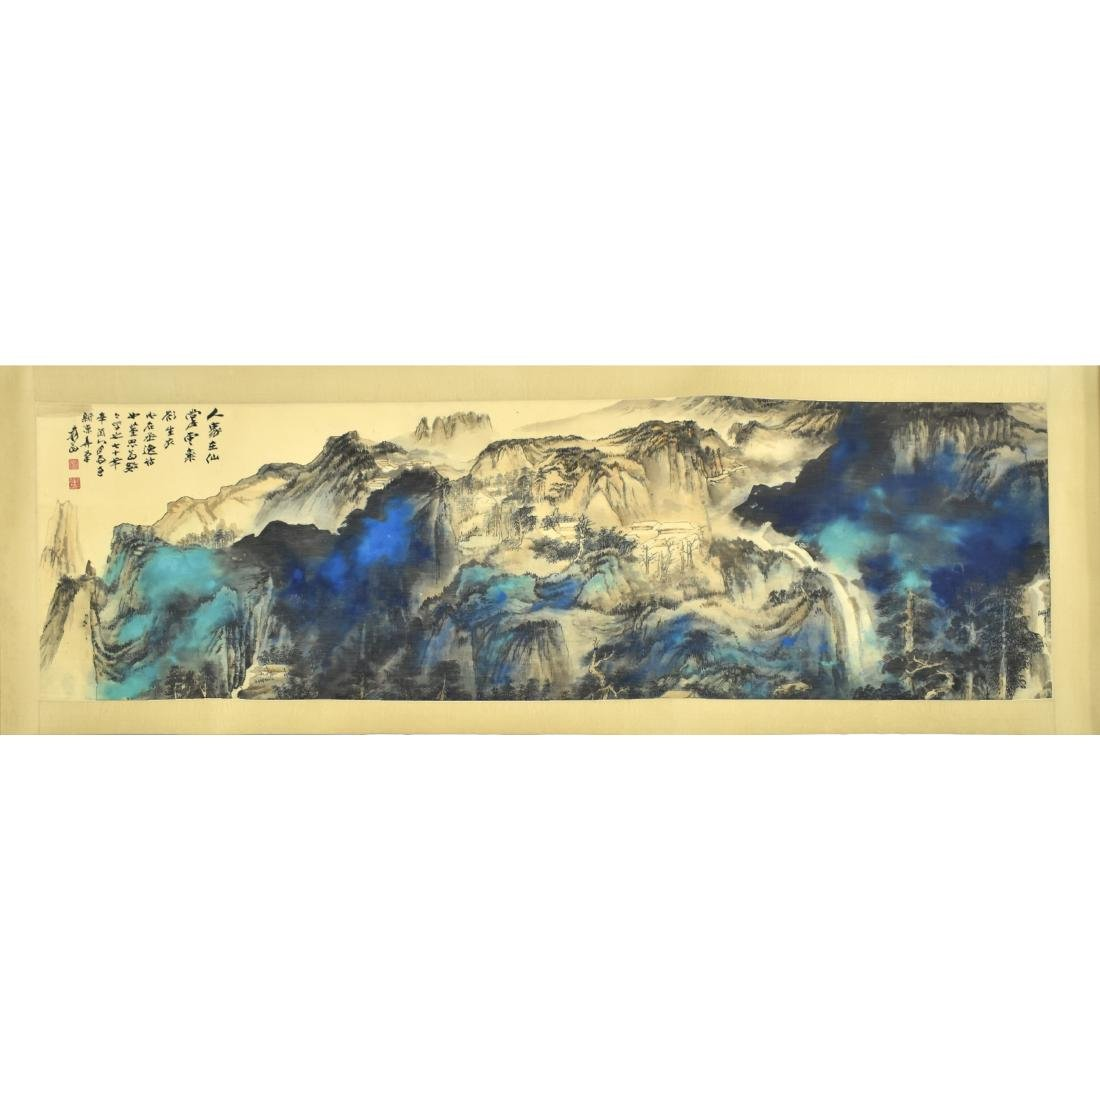 CHINESE PAINTING OF A VIBRANT MOUNTAIN RANGE - 2